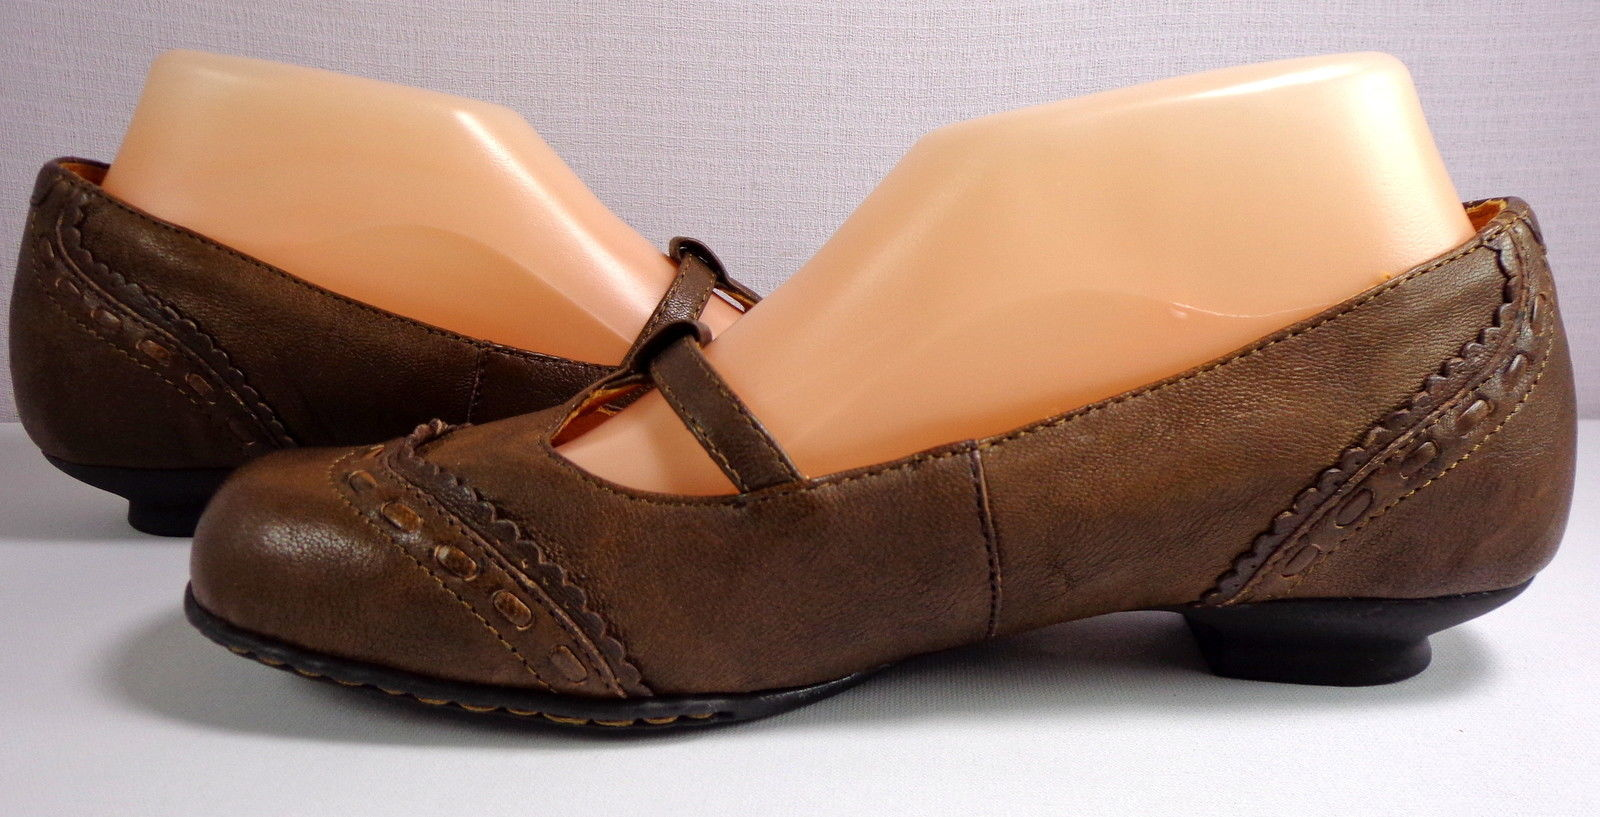 Born Womens Brown Leather Low Heel Shoes Size 8.5 M